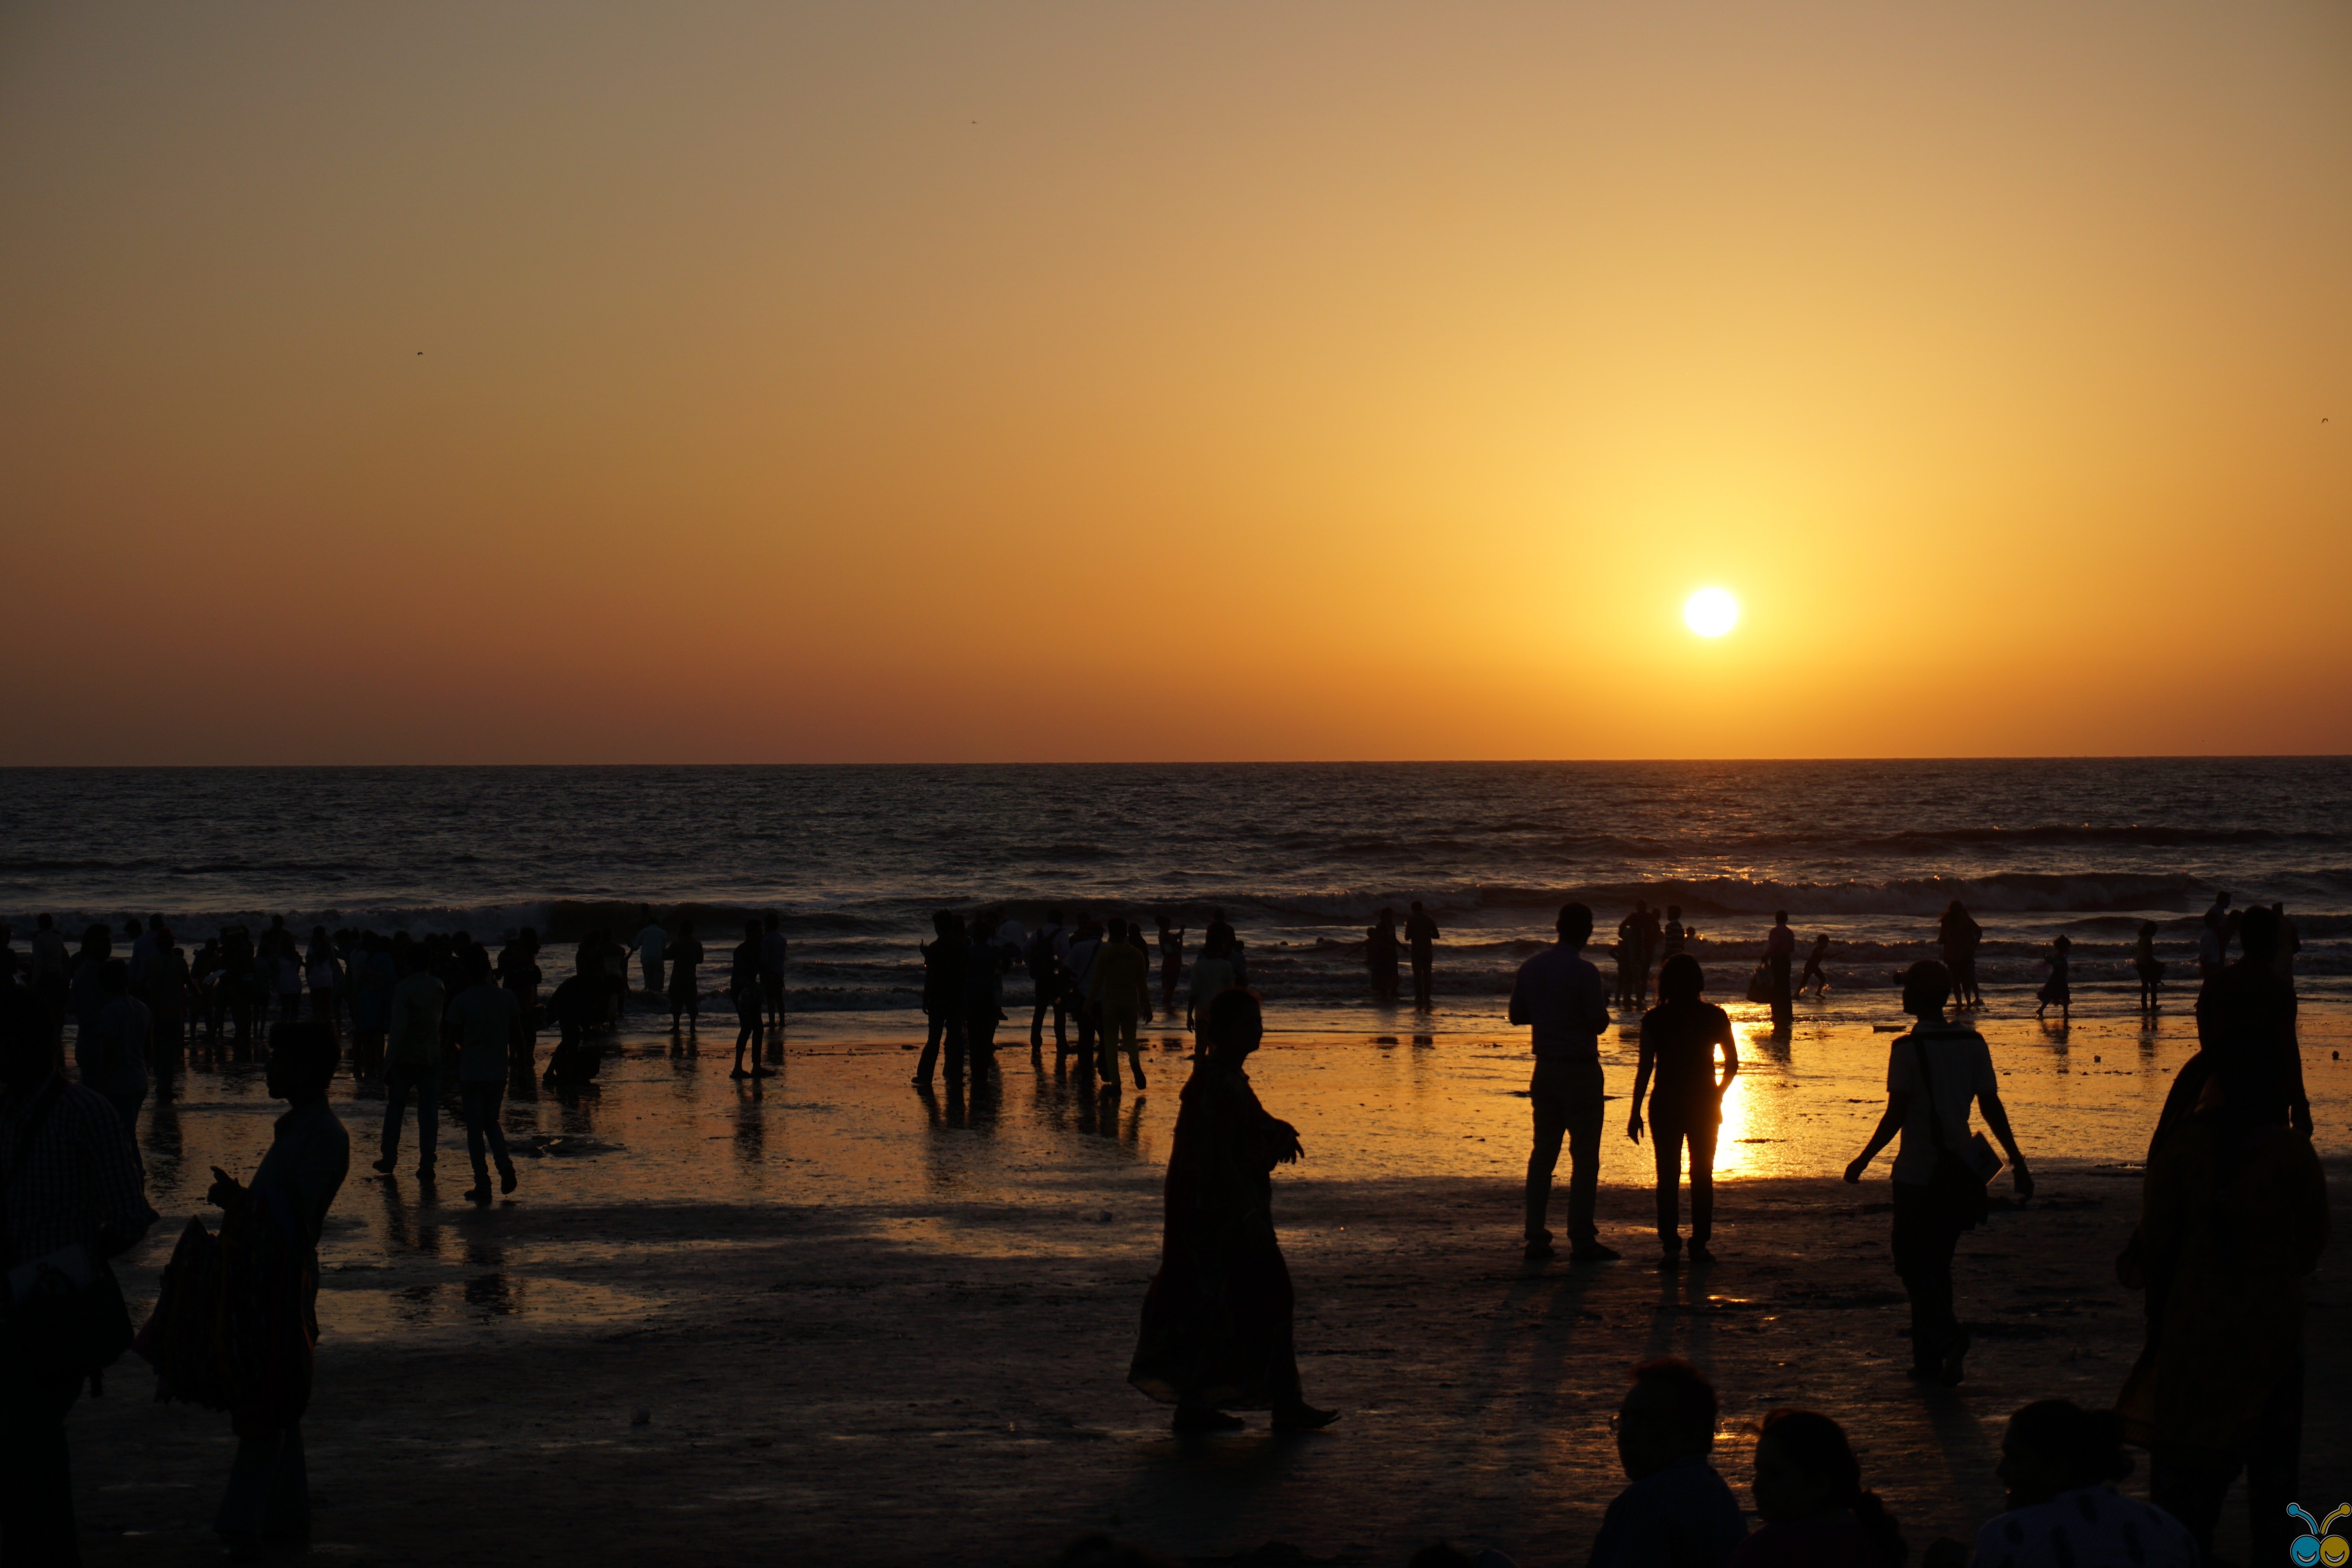 Silhouettes of people on beach at sunset photo